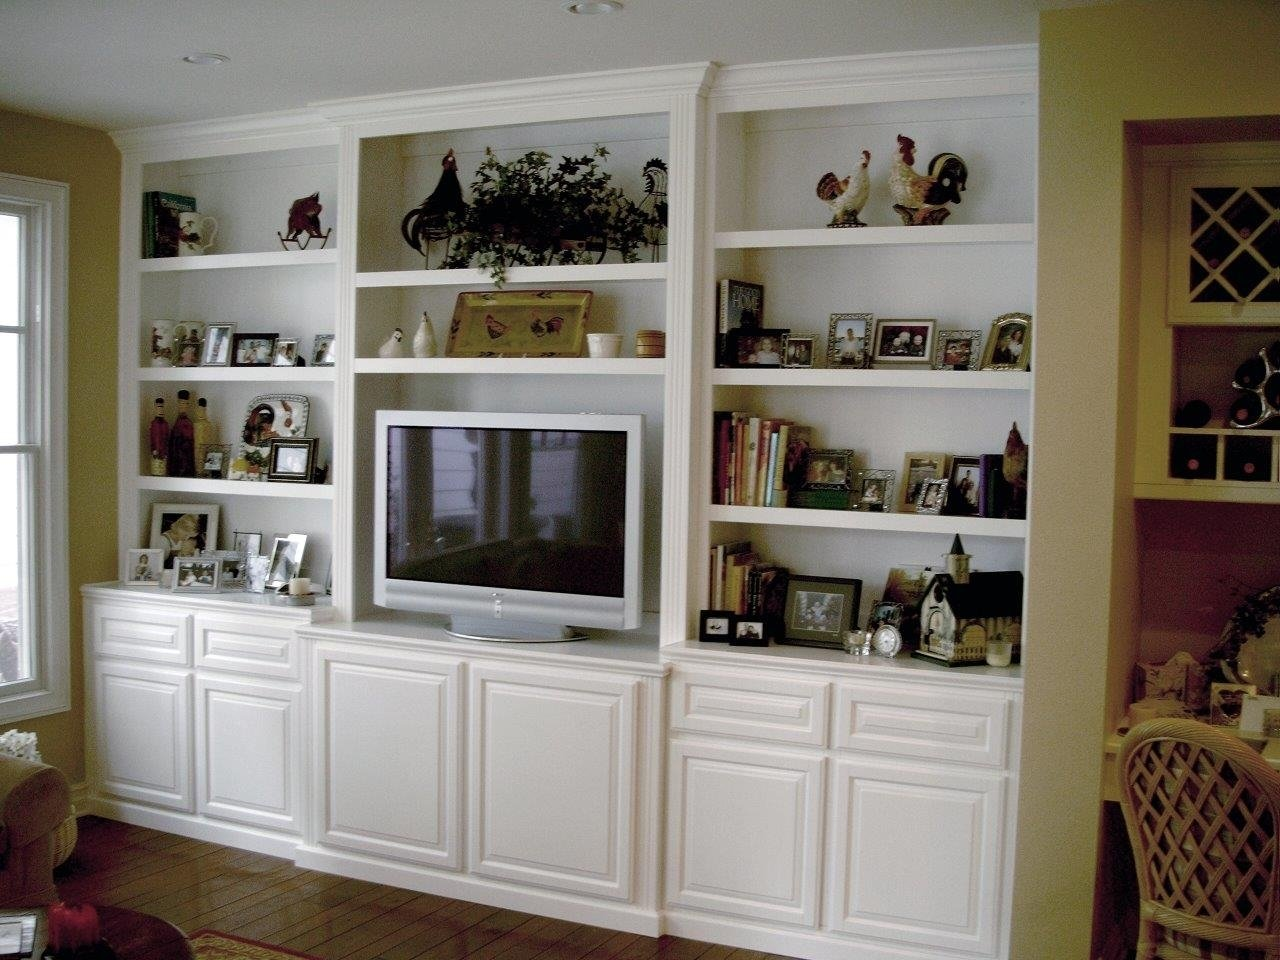 10 Awesome Built In Entertainment Center Ideas wall units built in entertainment center built in entertainment 2020